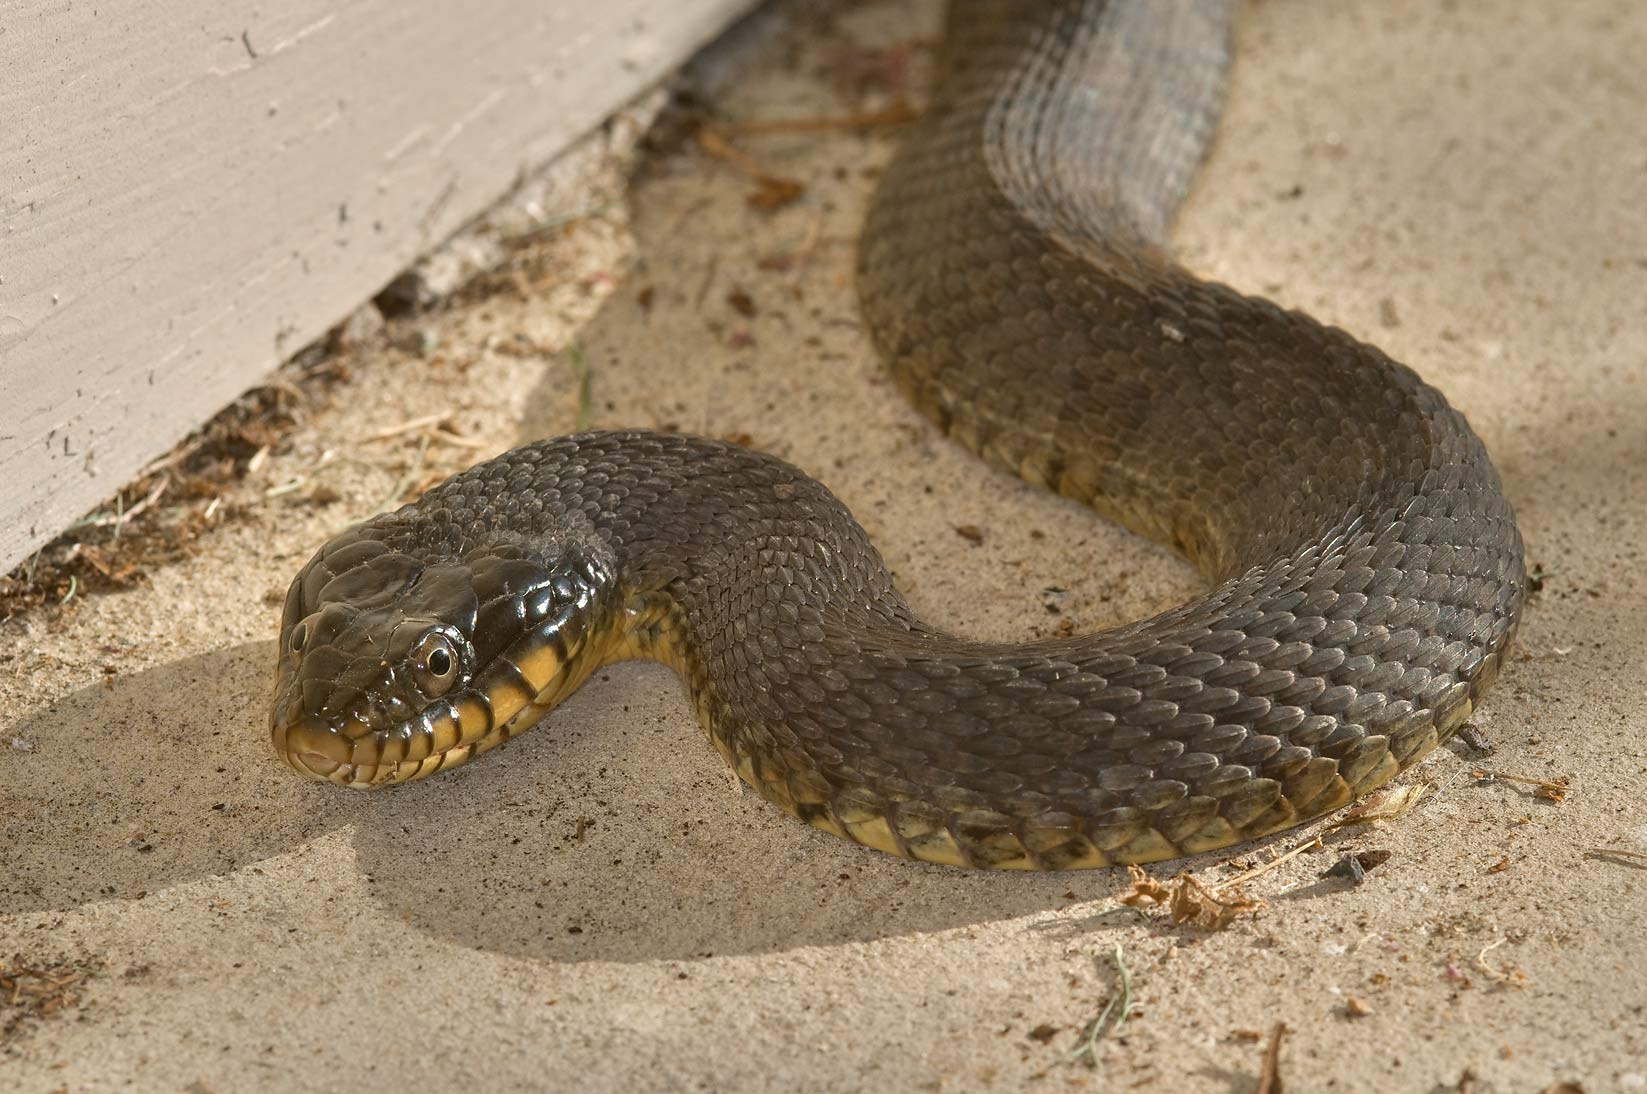 Yellow-Bellied Water Snake, Nerodia erythrogaster...Bush Dr.. College Station, Texas